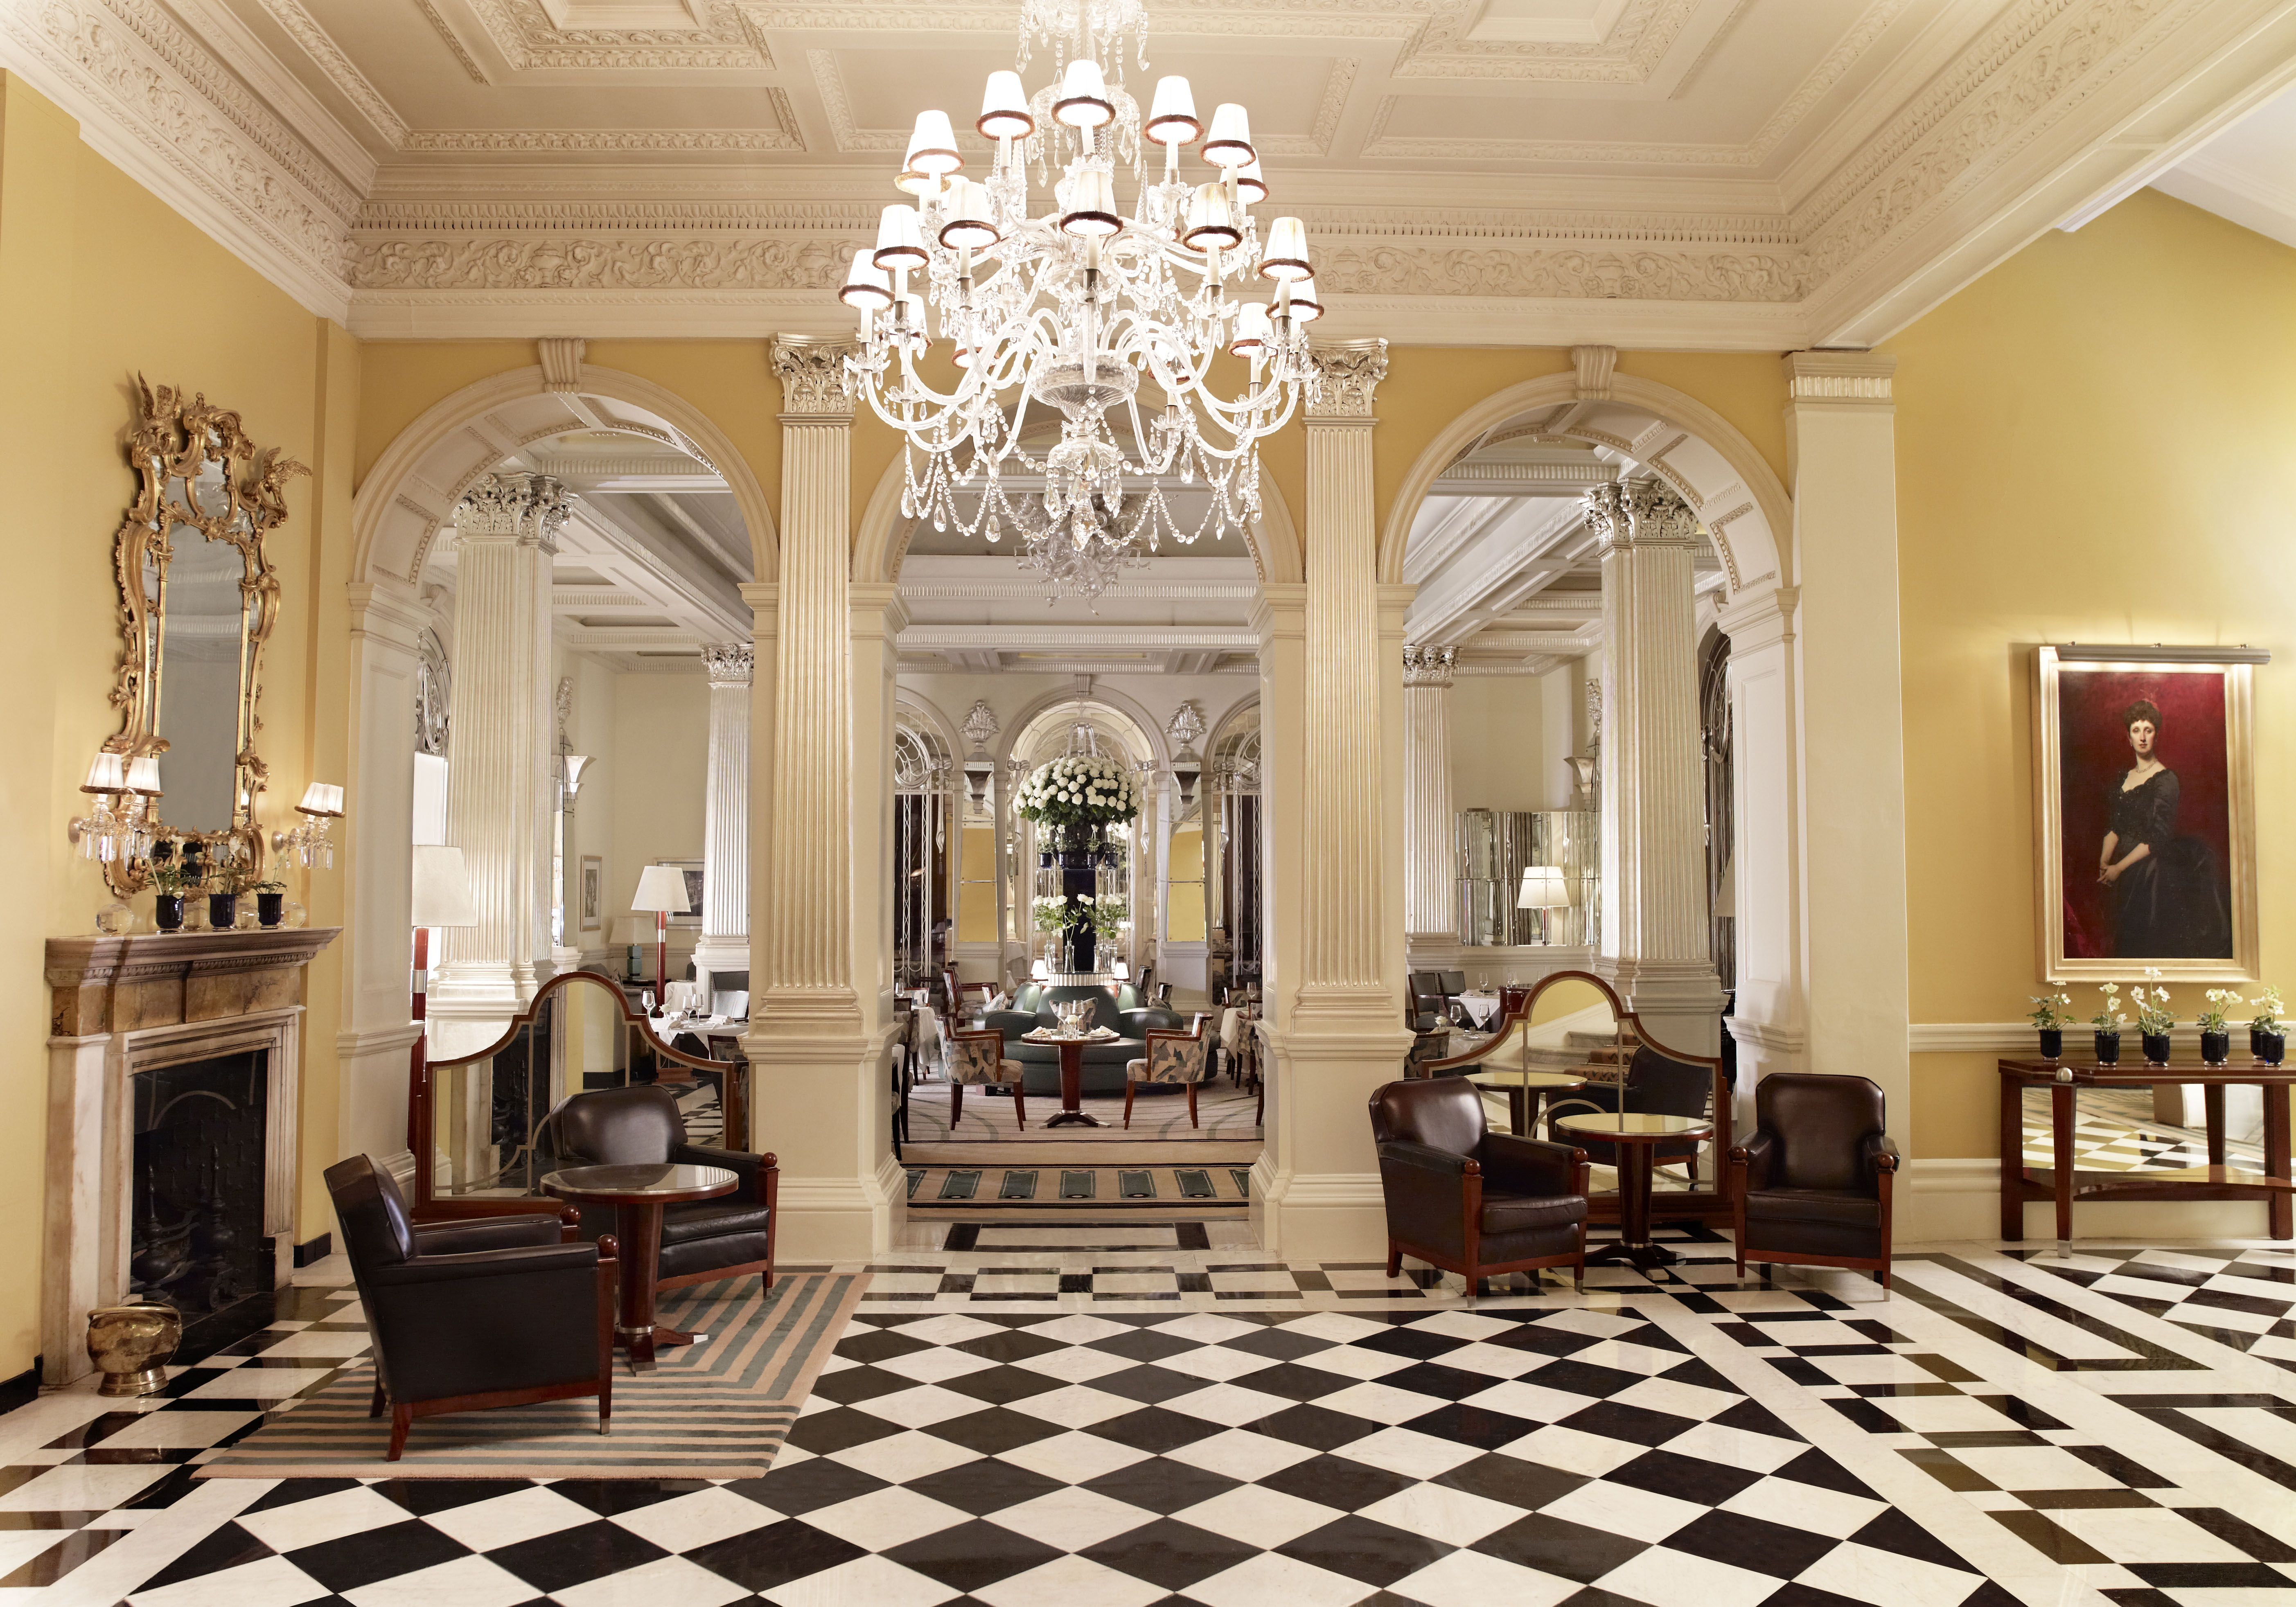 The Imperial Hotel Delhi India Was Opened In 1931 Designed